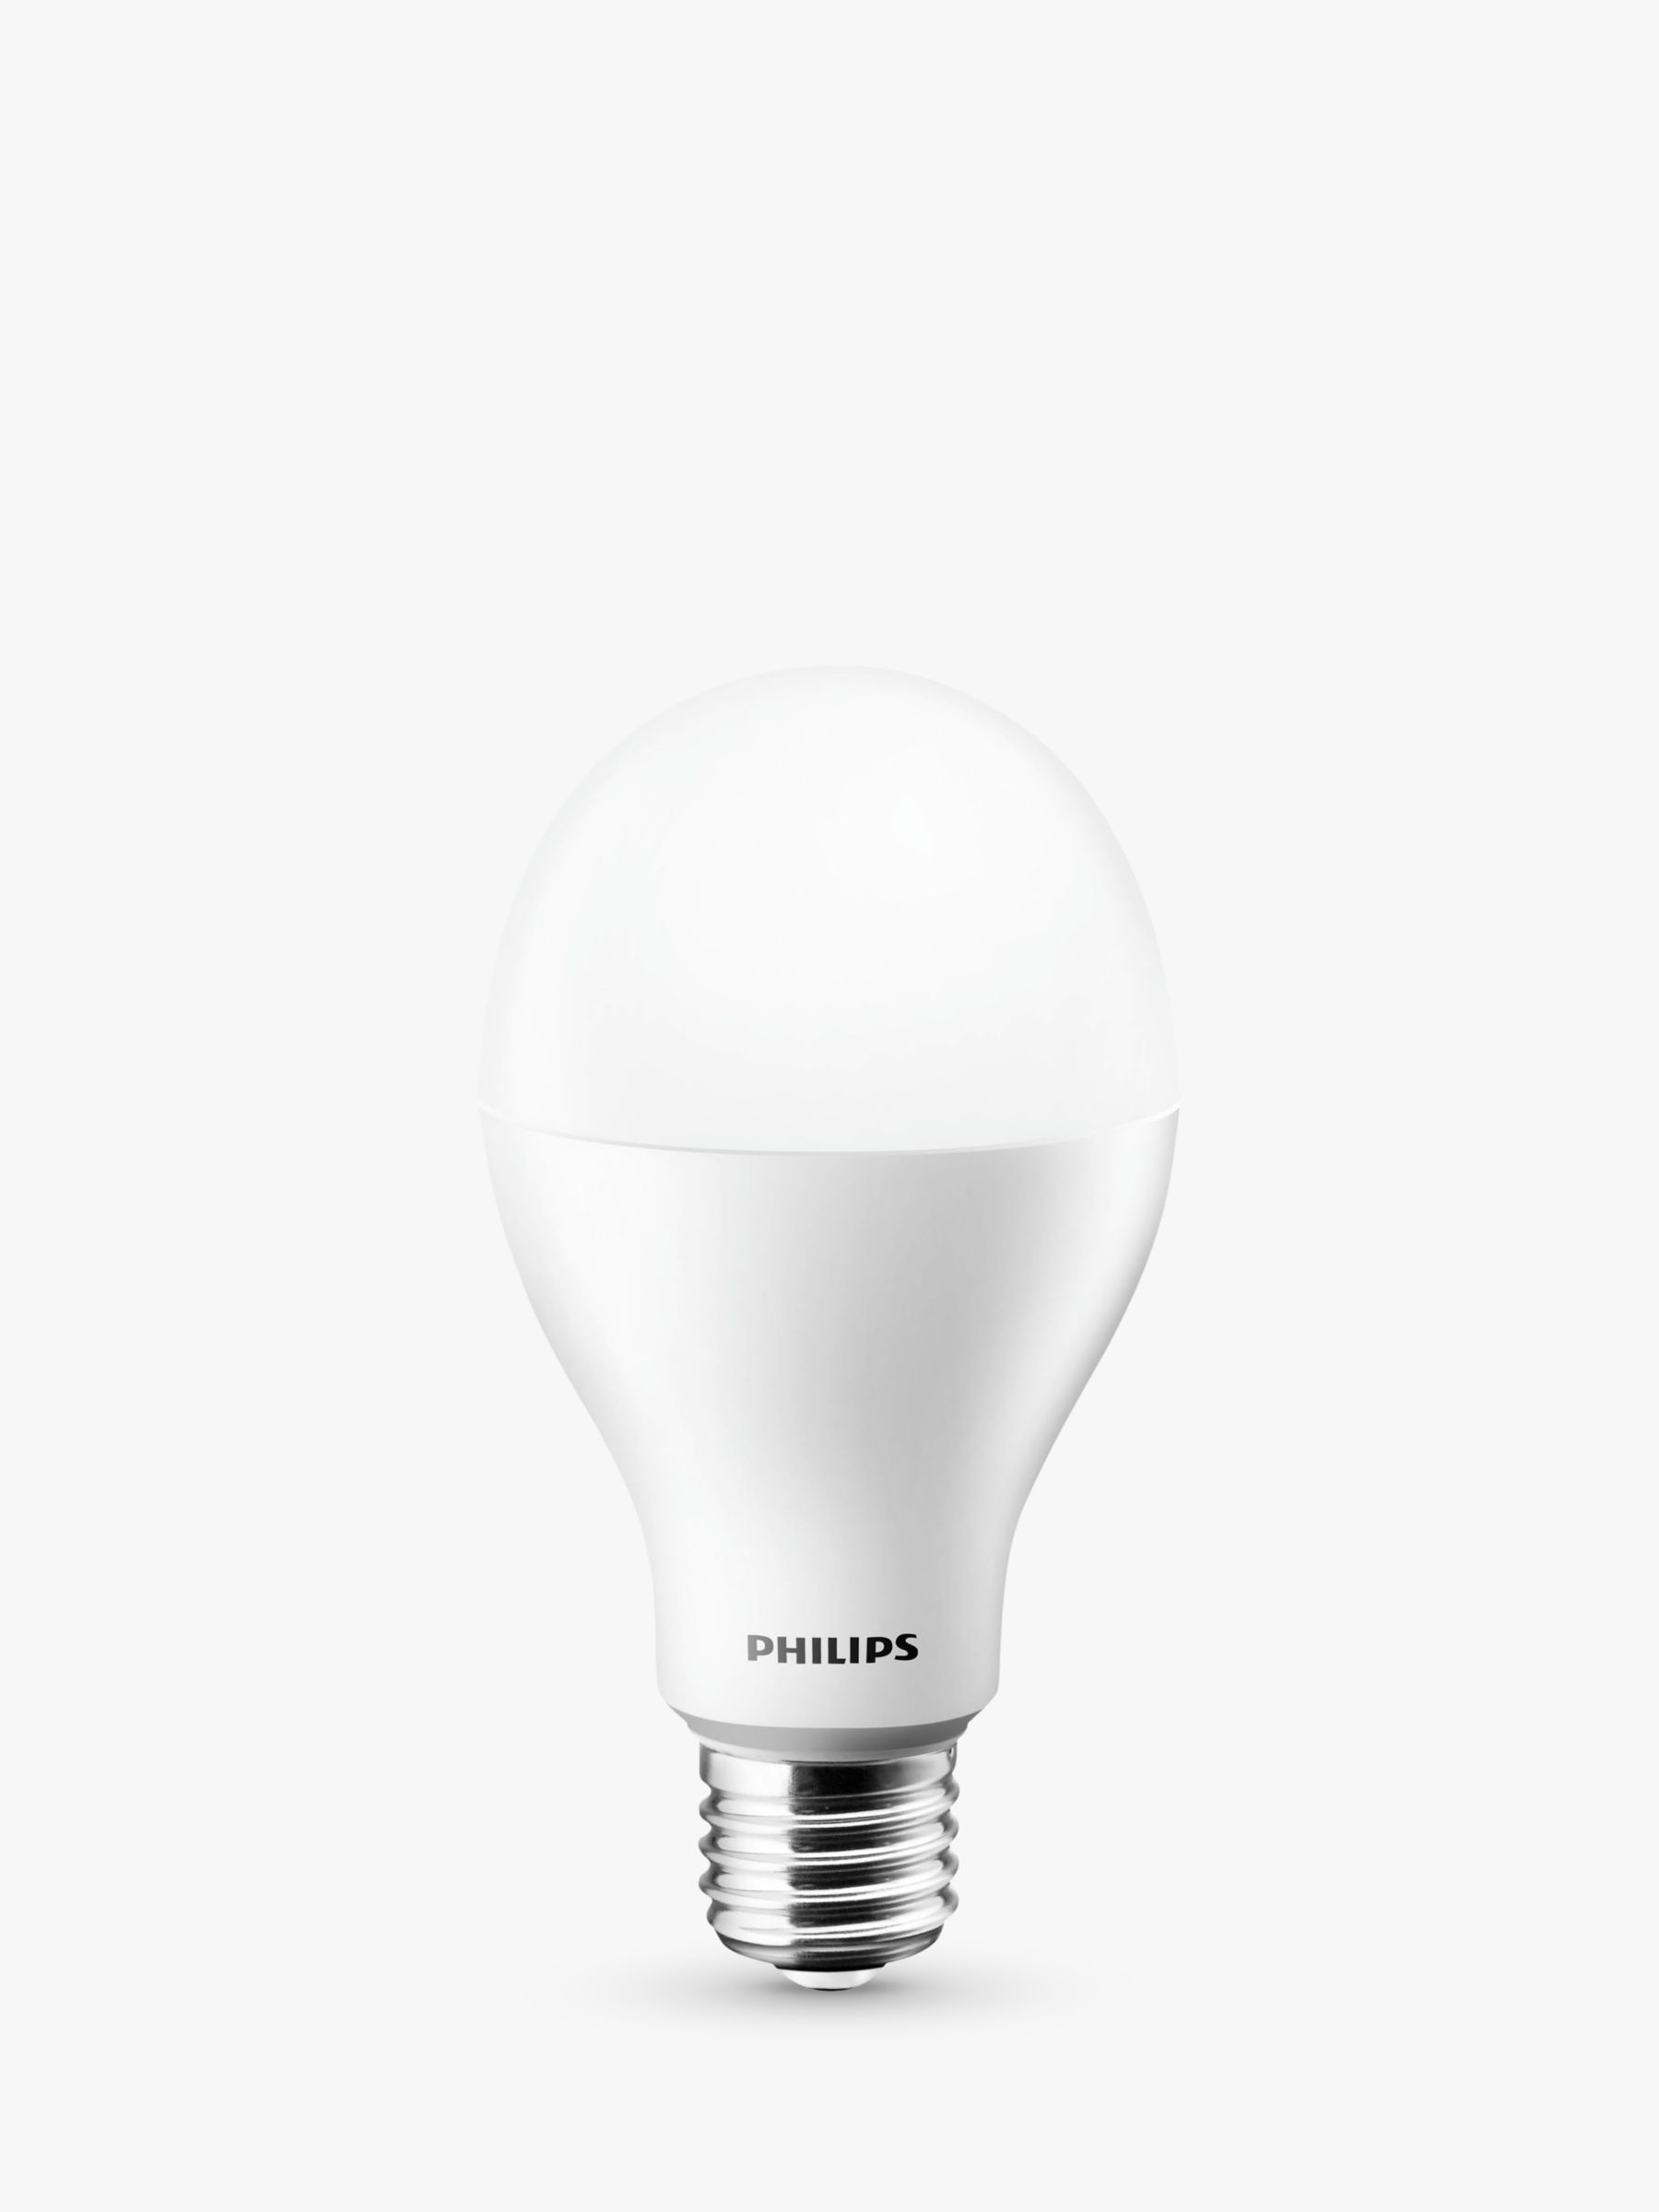 Philips 11w Es Led Classic Light Bulb Frosted At John Lewis Partners